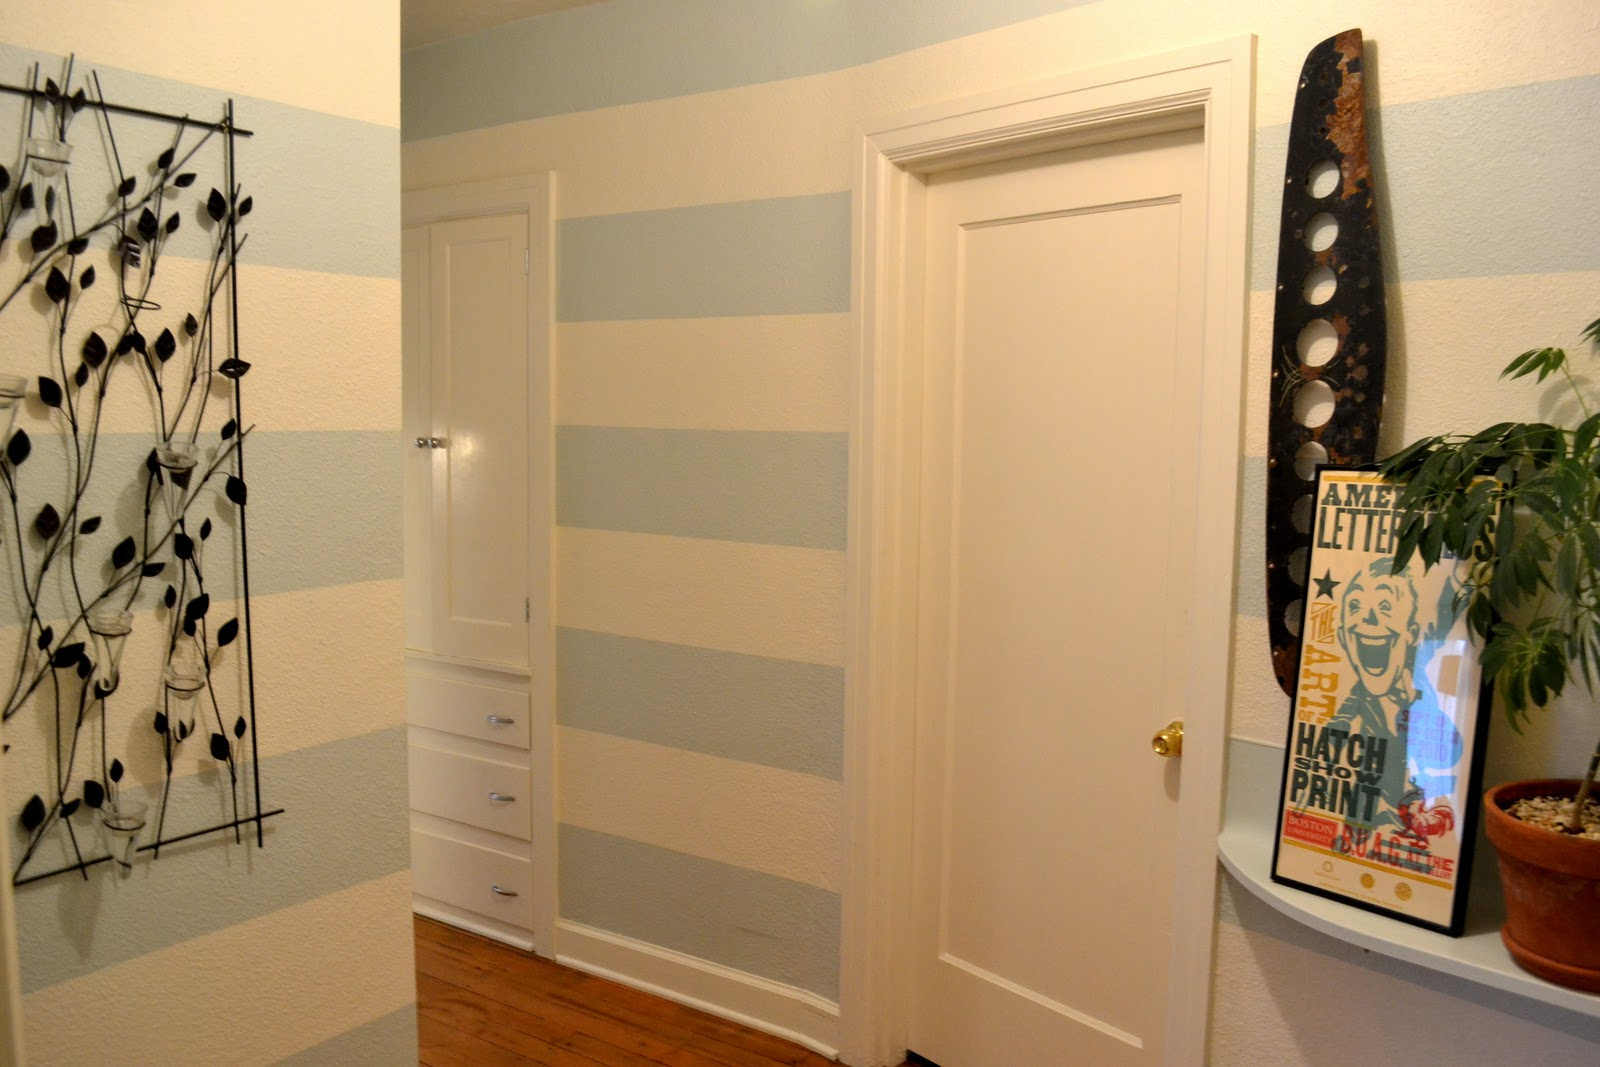 a home in the making: {renovate} stripes!